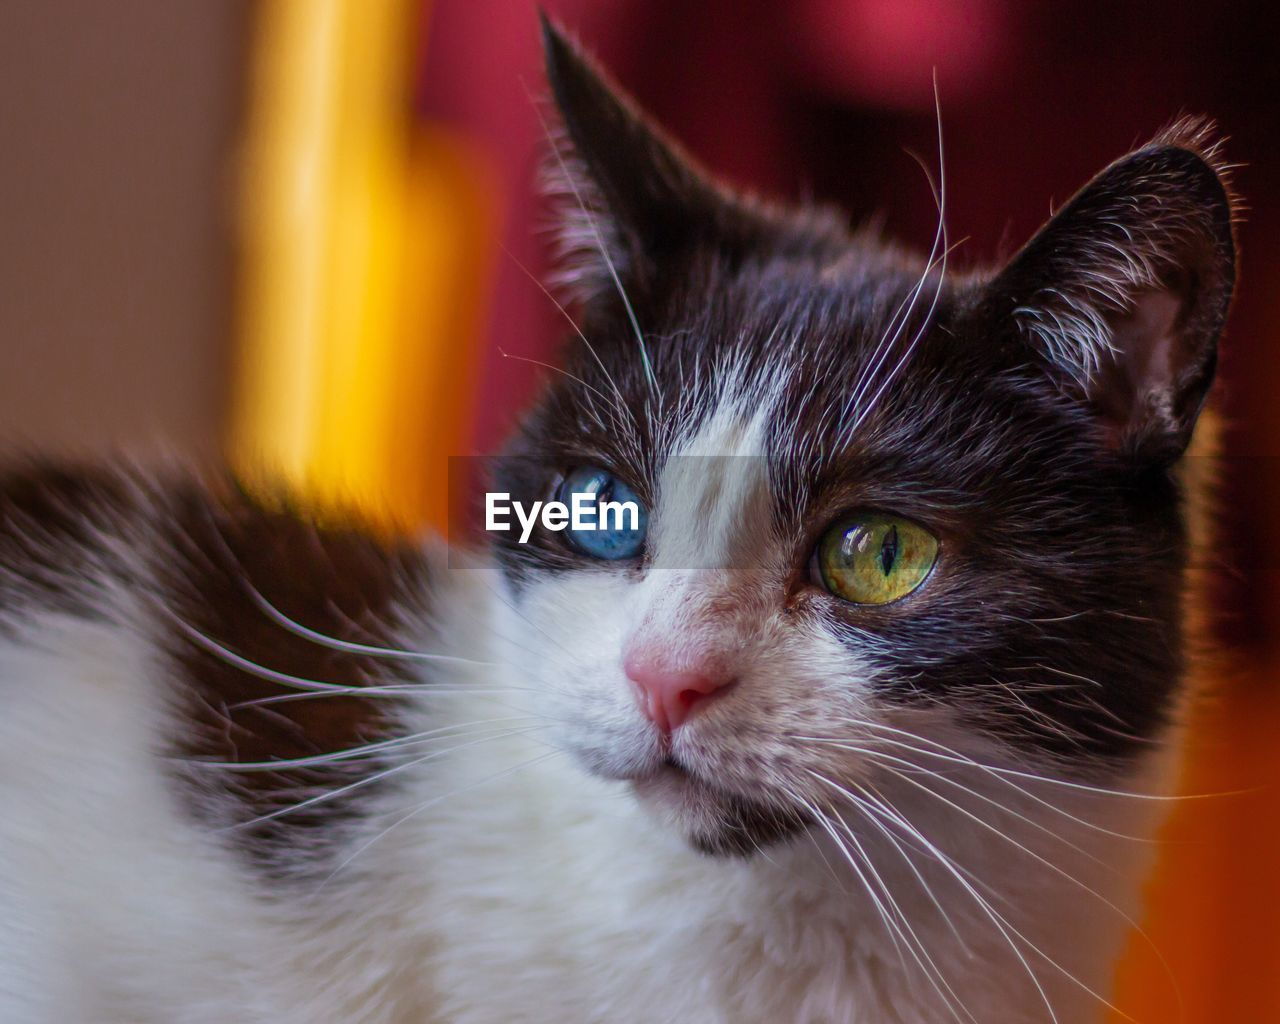 domestic, domestic cat, cat, pets, domestic animals, feline, animal themes, animal, mammal, one animal, close-up, vertebrate, whisker, animal body part, no people, animal head, looking, portrait, focus on foreground, looking at camera, animal eye